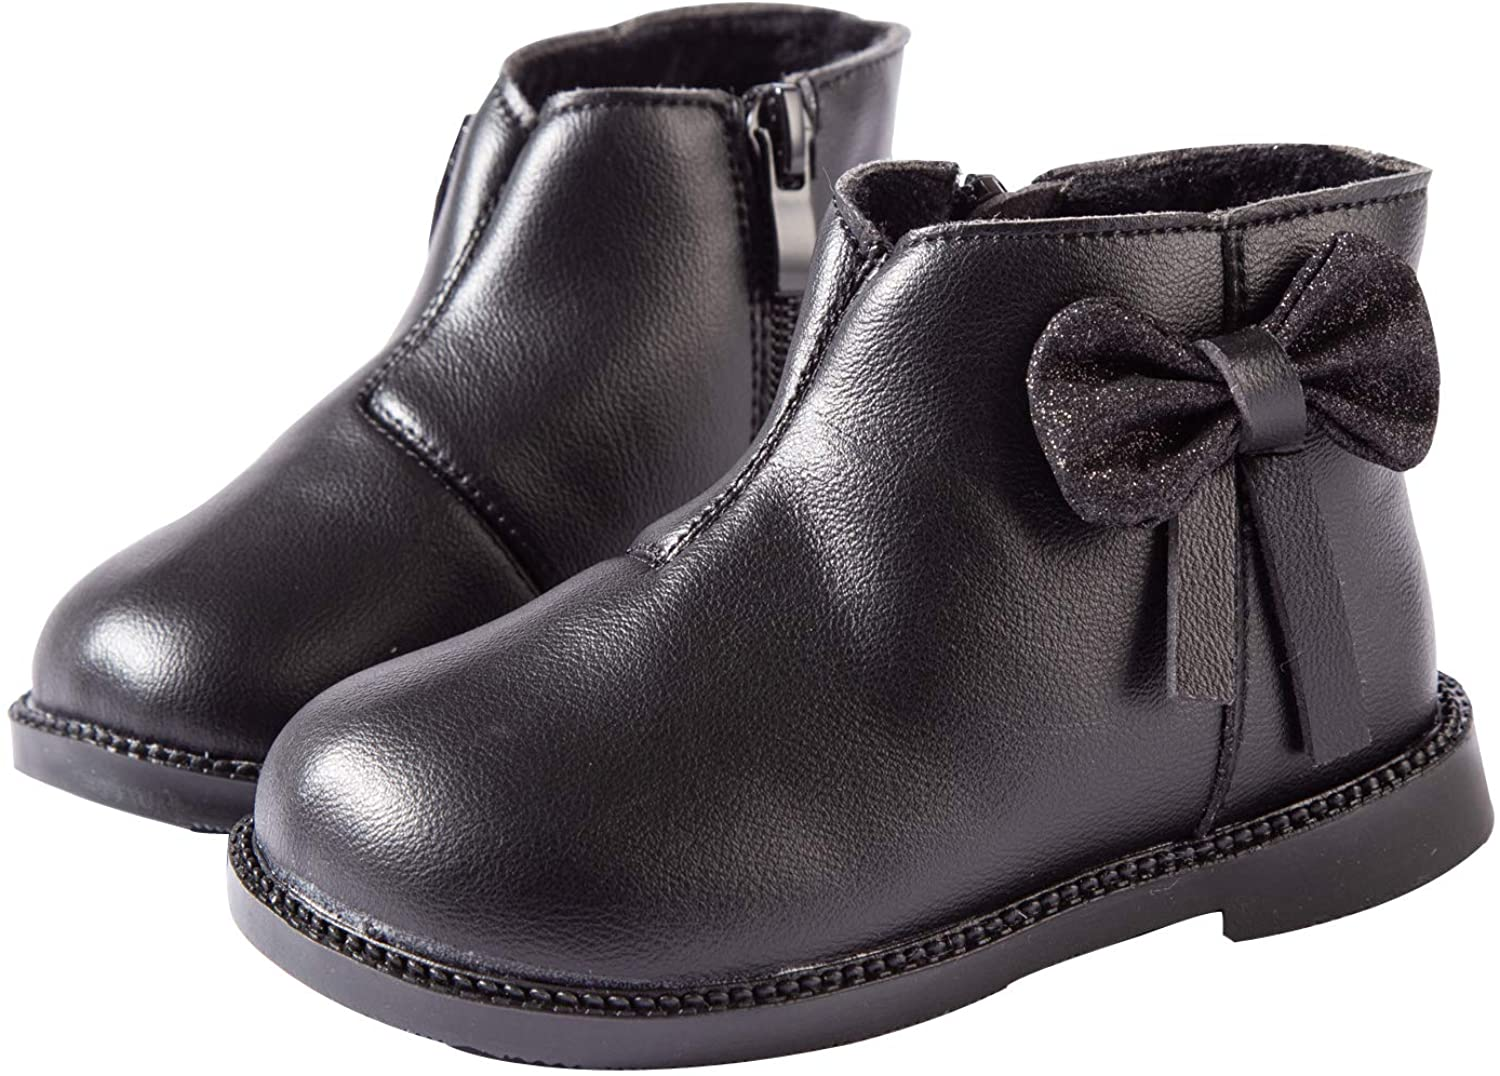 YWPENGCAI Baby Toddler Girls Leather Boots